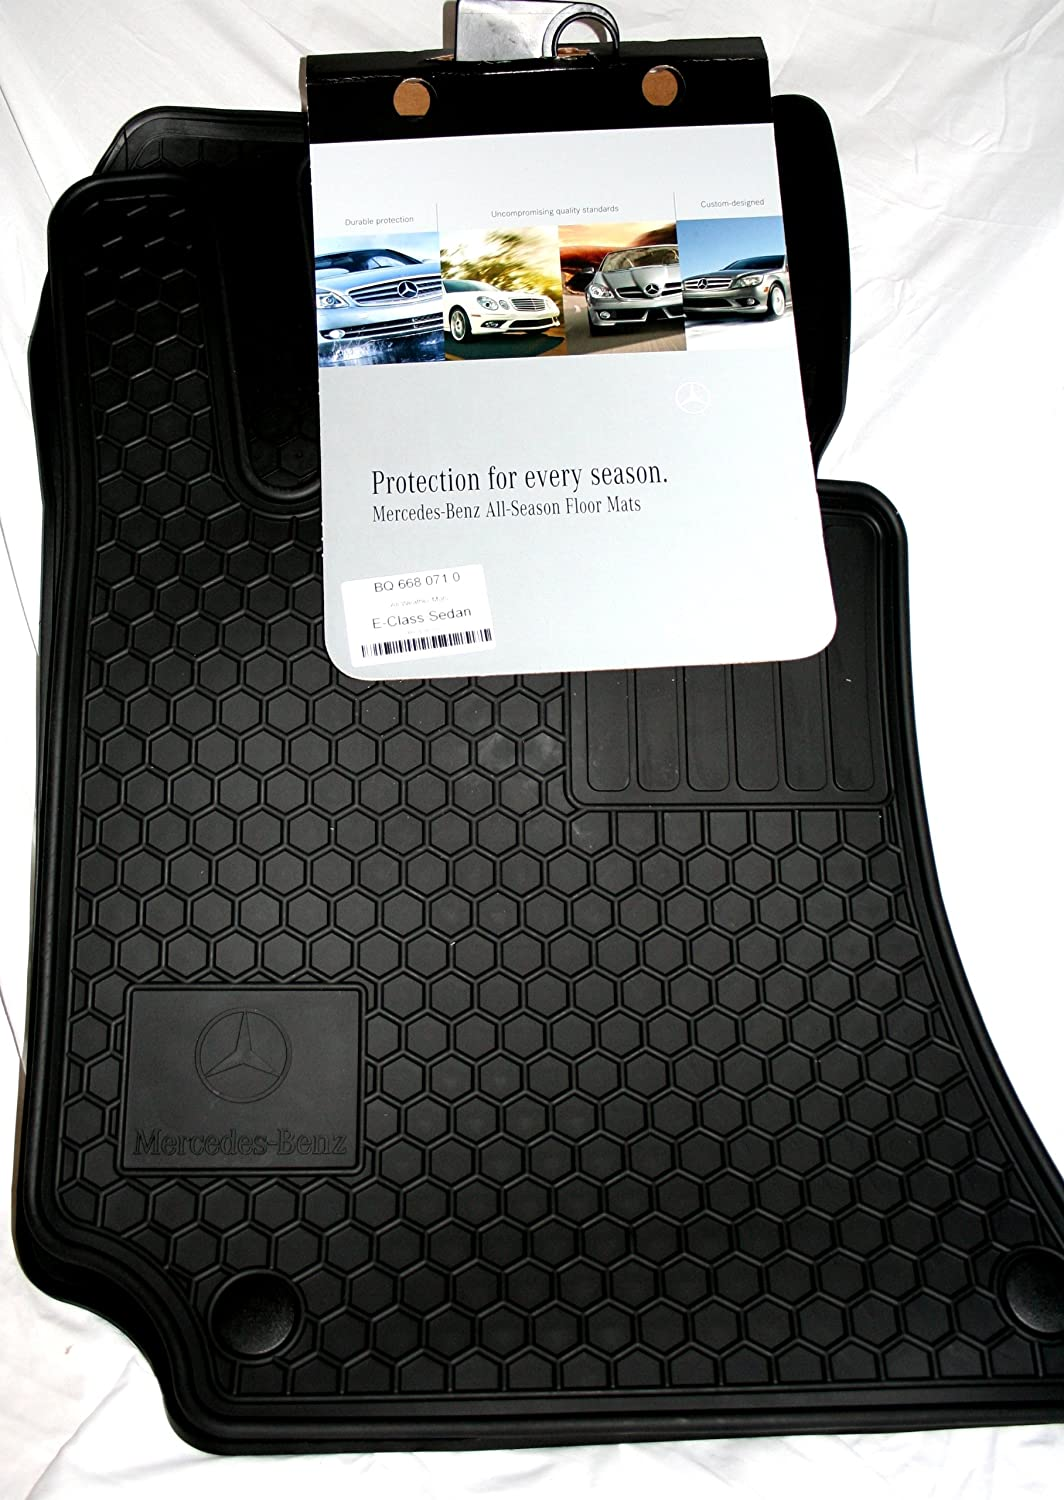 Amazon.com: Genuine Mercedes Benz Q6680710   Rubber Floor Mats W212 E250  E350 E400 E550 SEDAN U0026 WAGON Black: Automotive